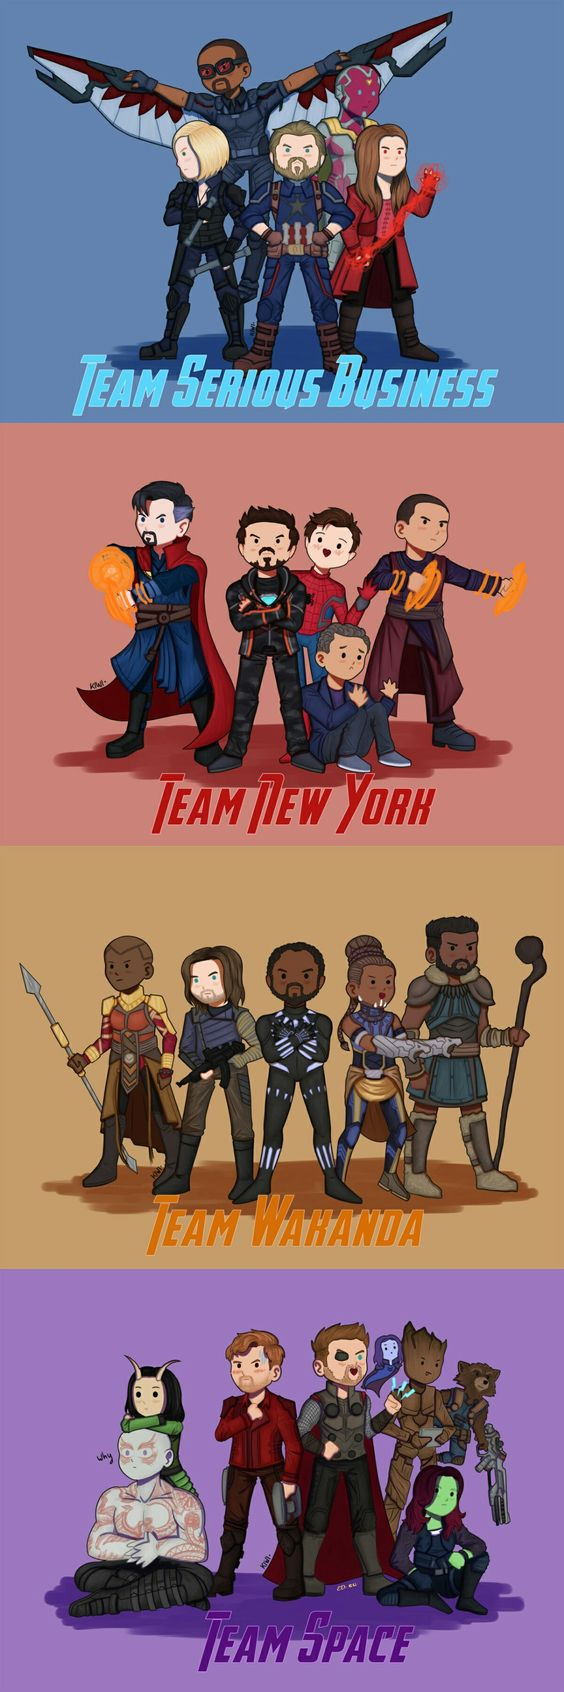 Remarkable people || Avengers Infinity War || captain america black widow scarlet witchvision falcon Tony Stark iron man peter parker spiderman Dr strange Bruce banner wakanda black panthertchalla shut okoye bucky barnes mbakuguardians of the galaxy gotg peter quill star lord || Cr: Kiwi